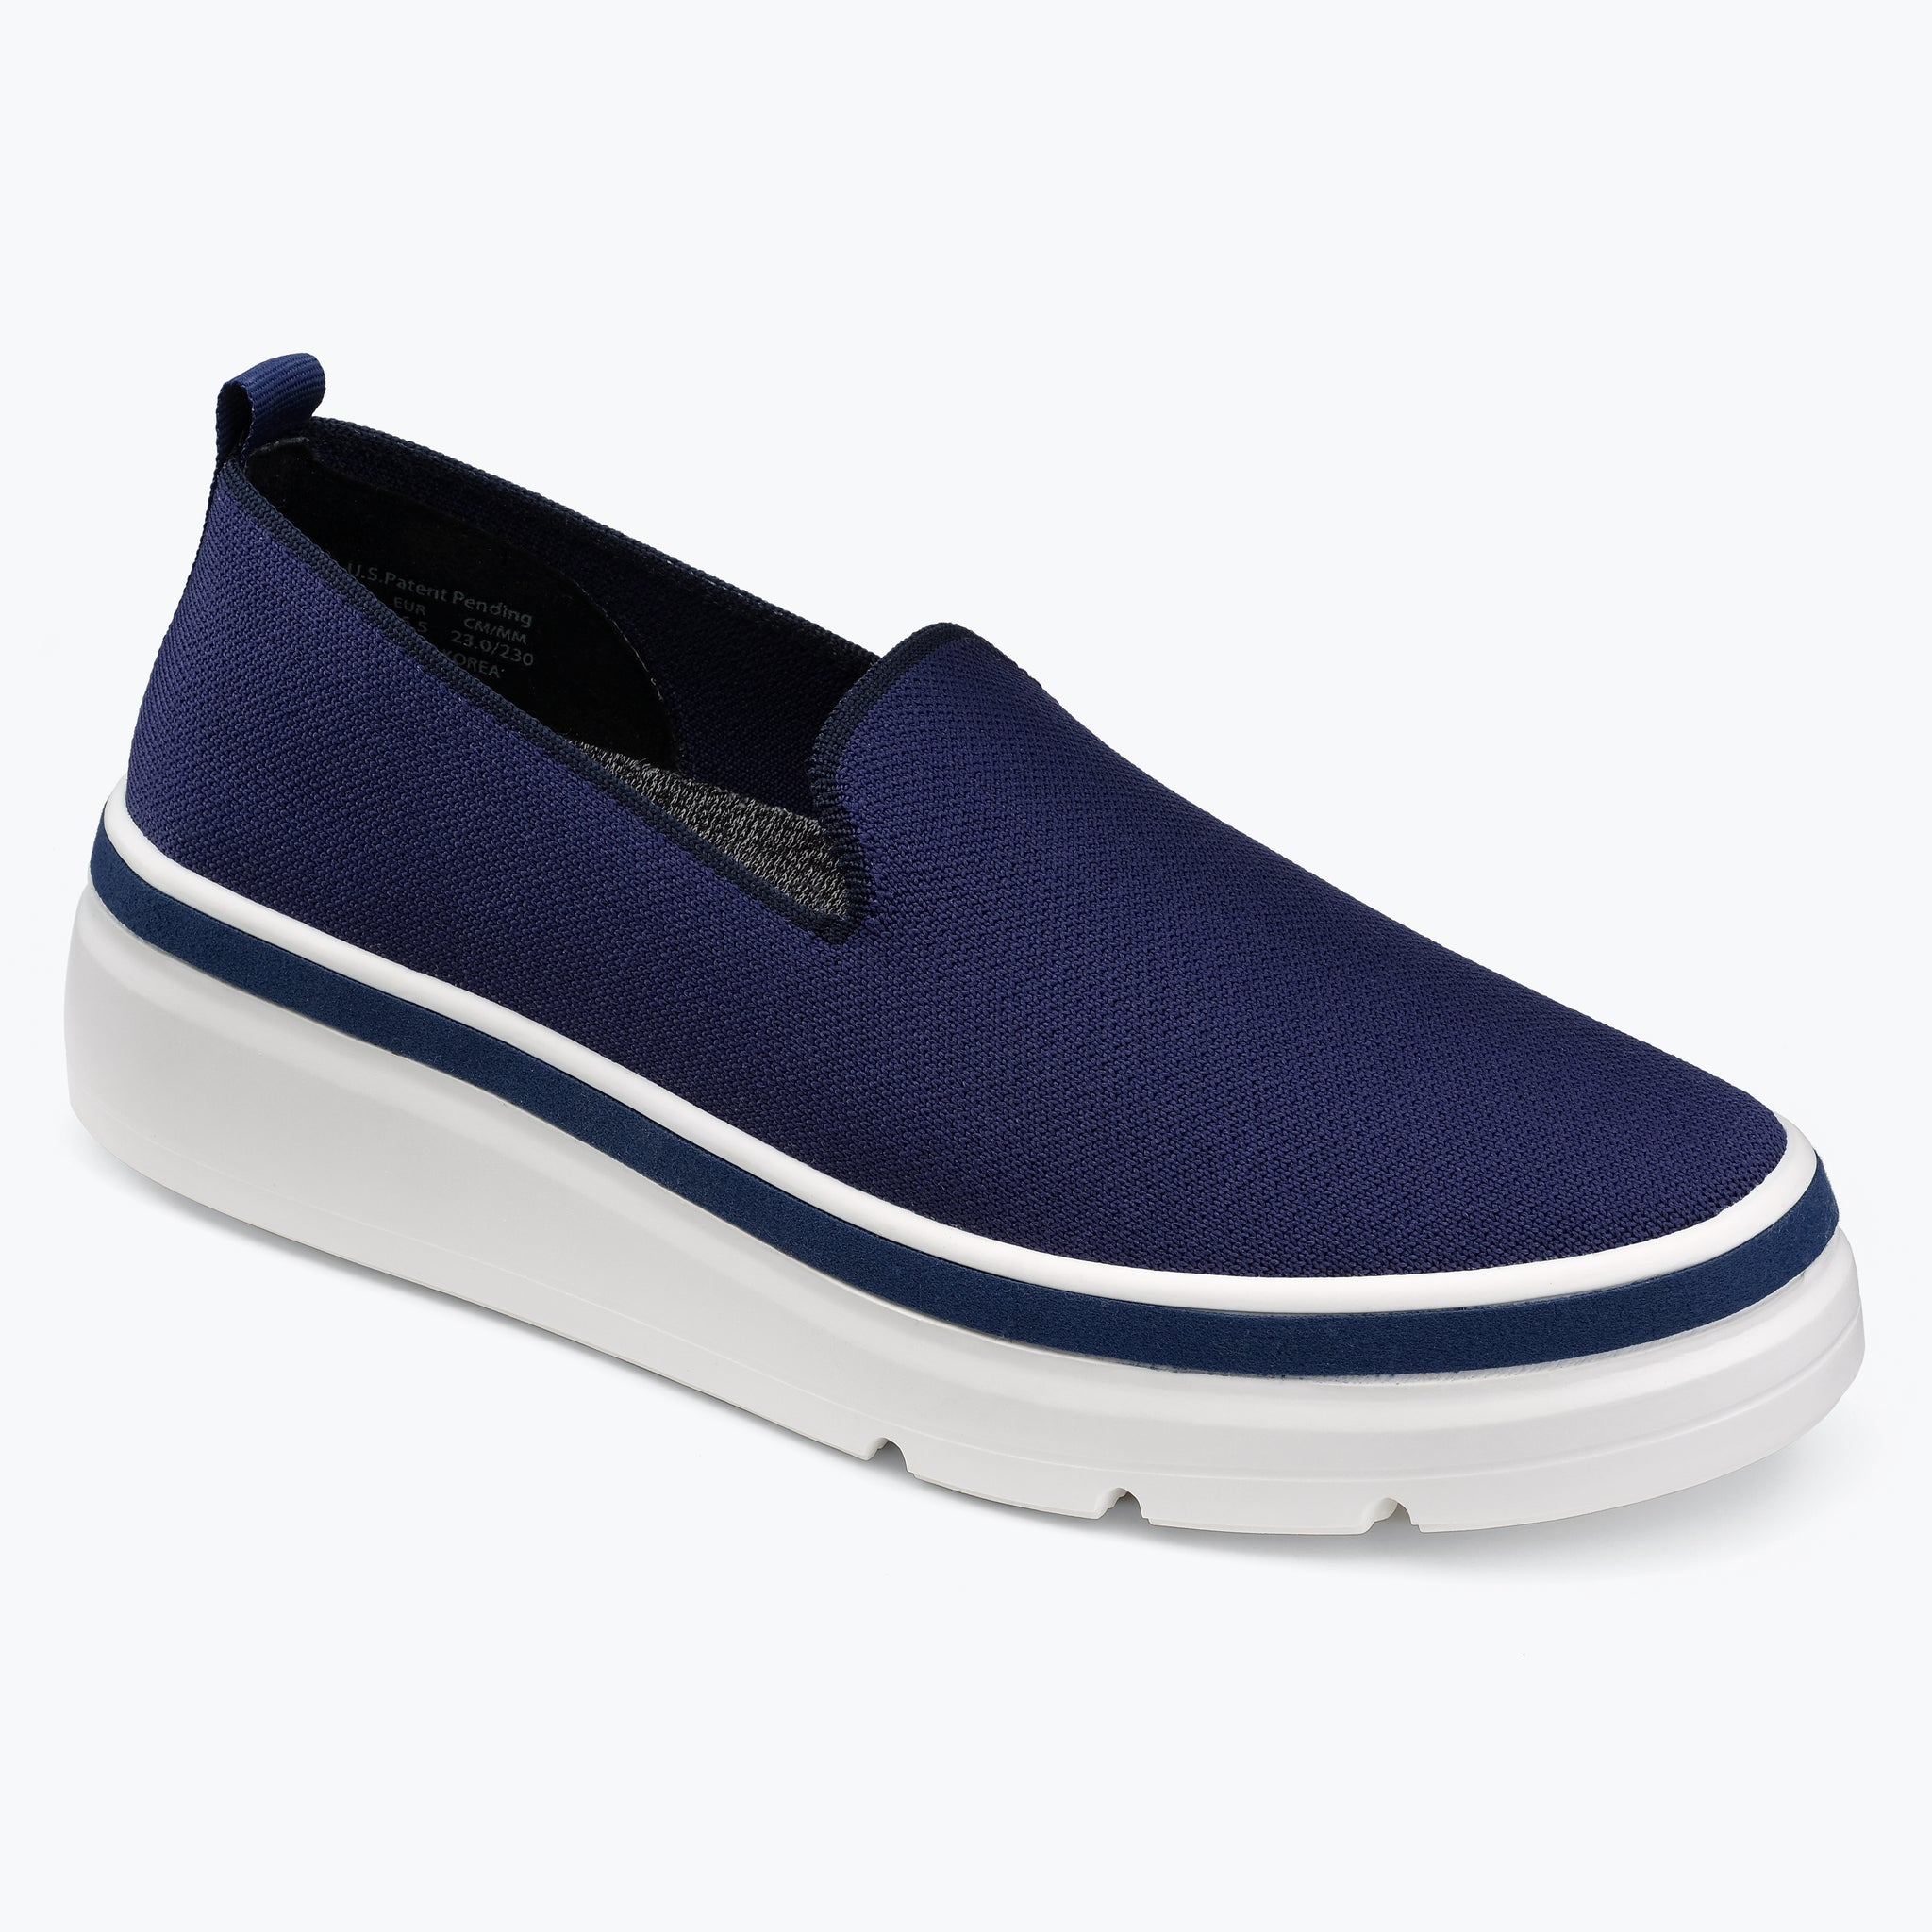 Sutton Knit Sneaker - Navy